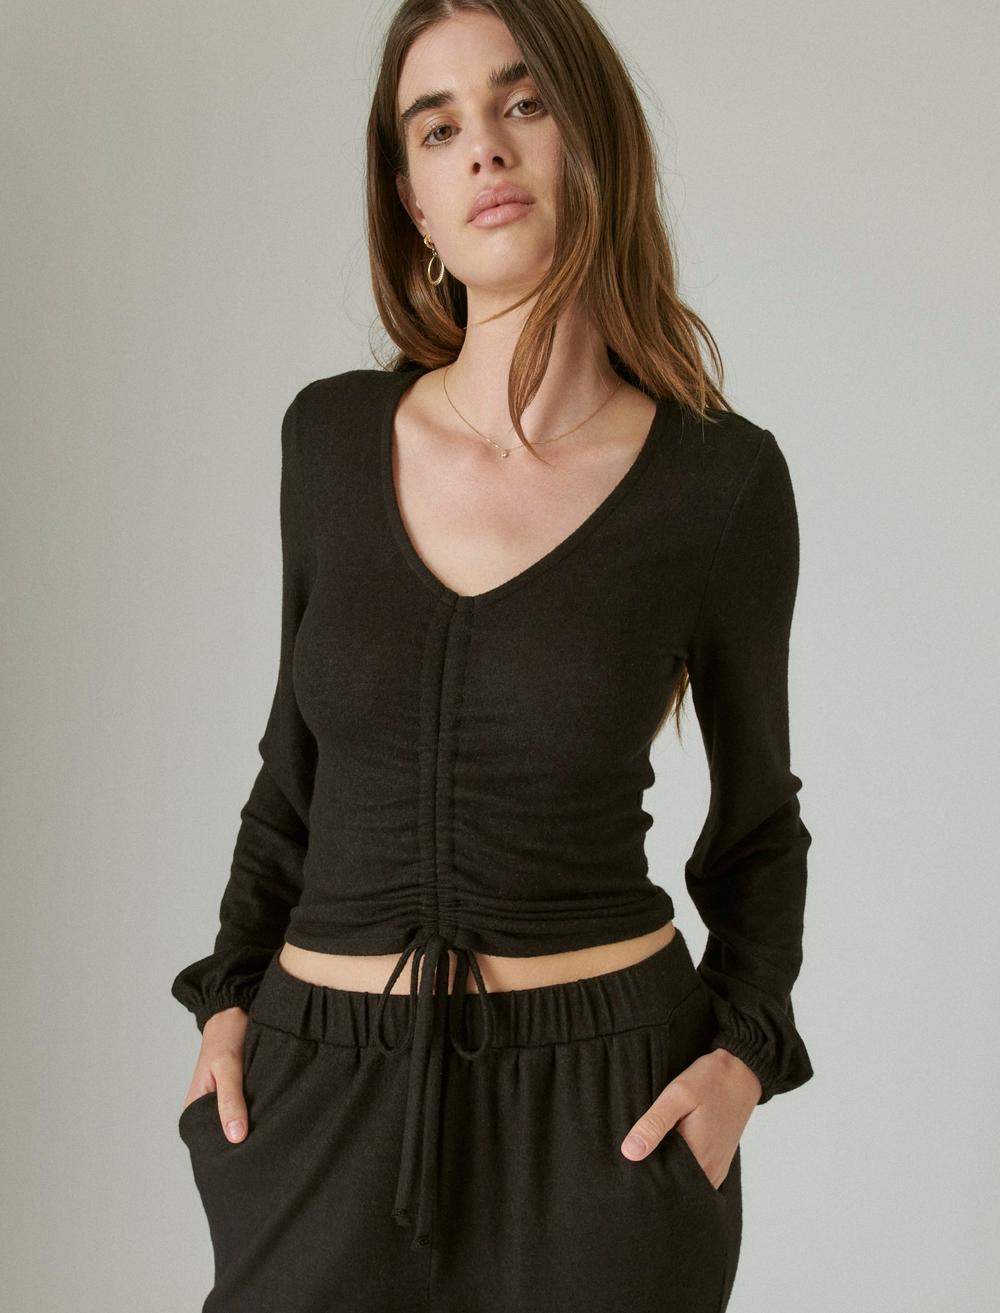 CLOUD JERSEY RIBBED RUCHED TOP, image 1